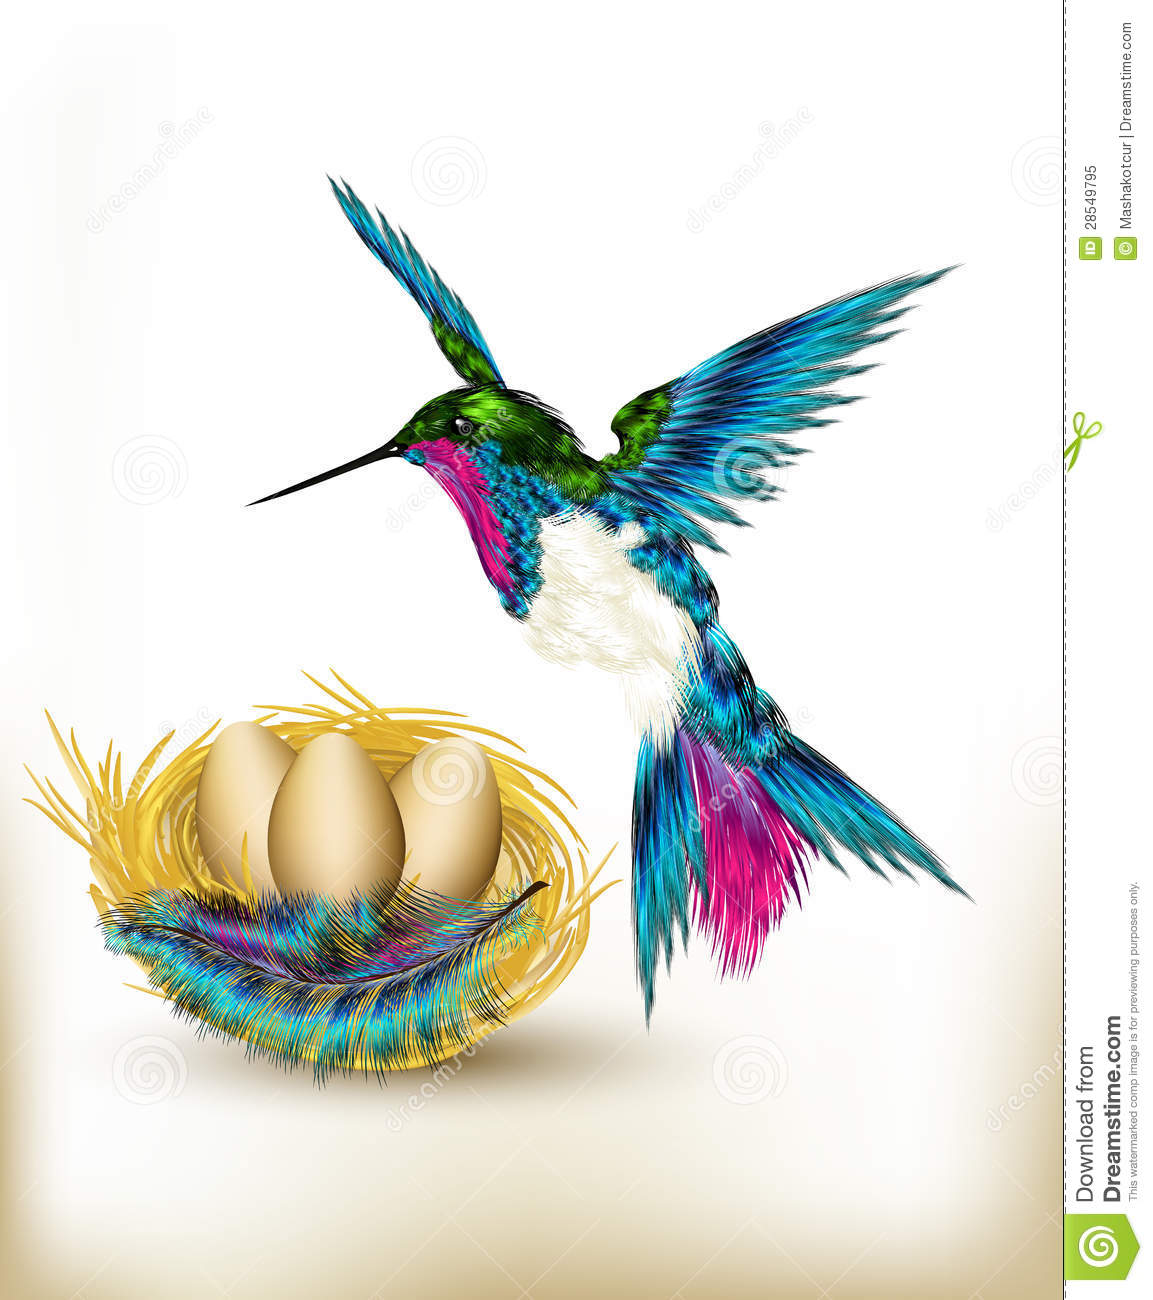 Download Colorful Background With Realistic Hummingbird And Nest Full Of Stock Vector - Illustration of heart, animal: 28549795